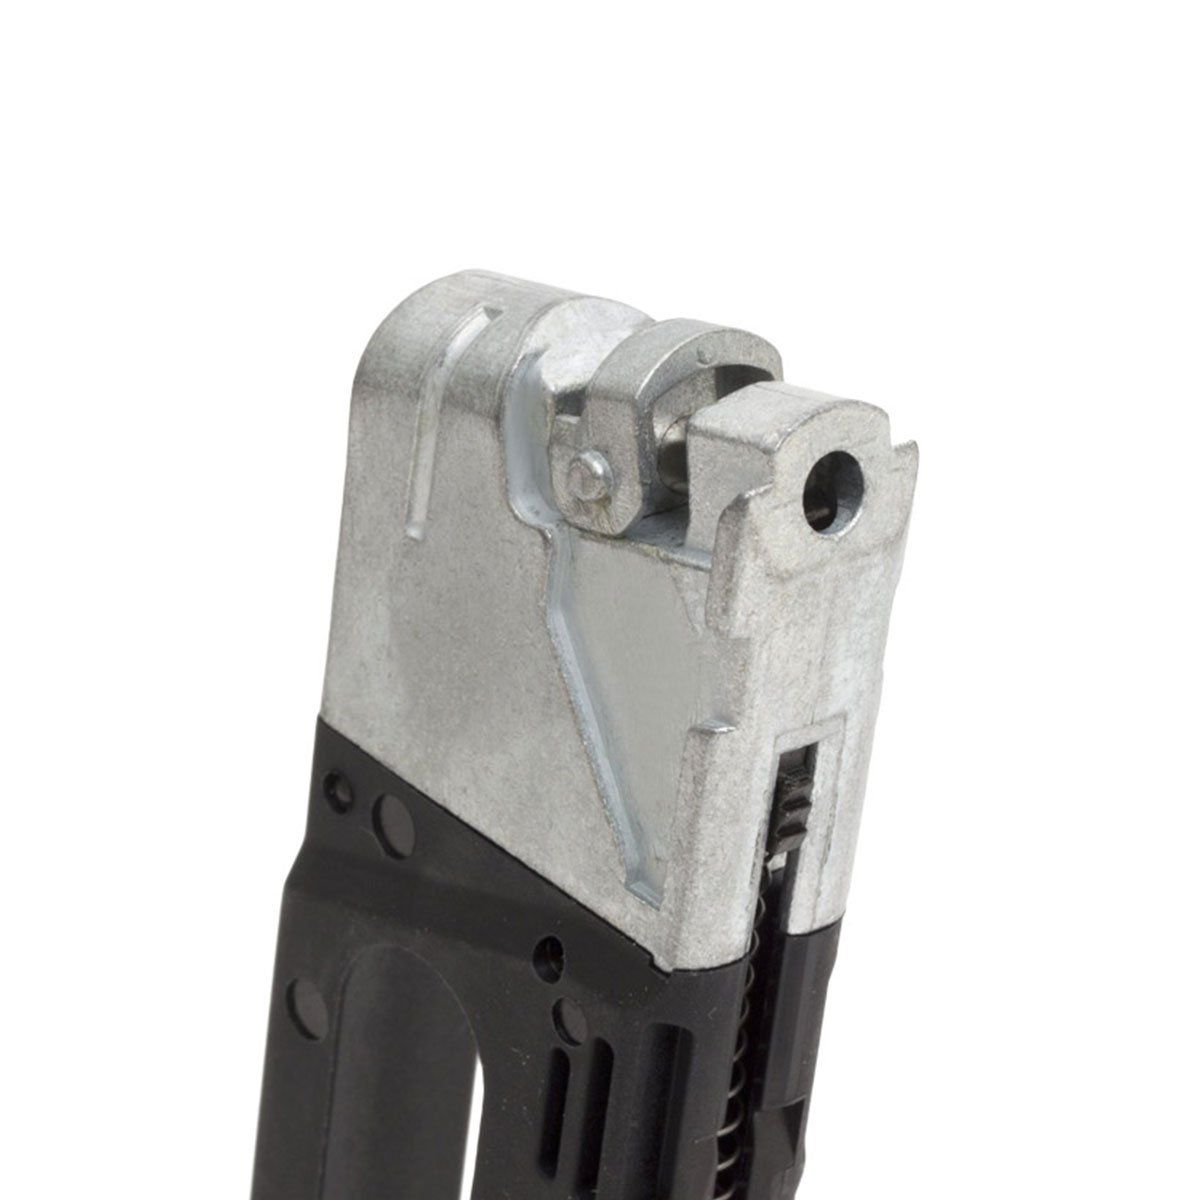 Magazine Para Arma de Pressão CO2 Wingun W119 4,5mm